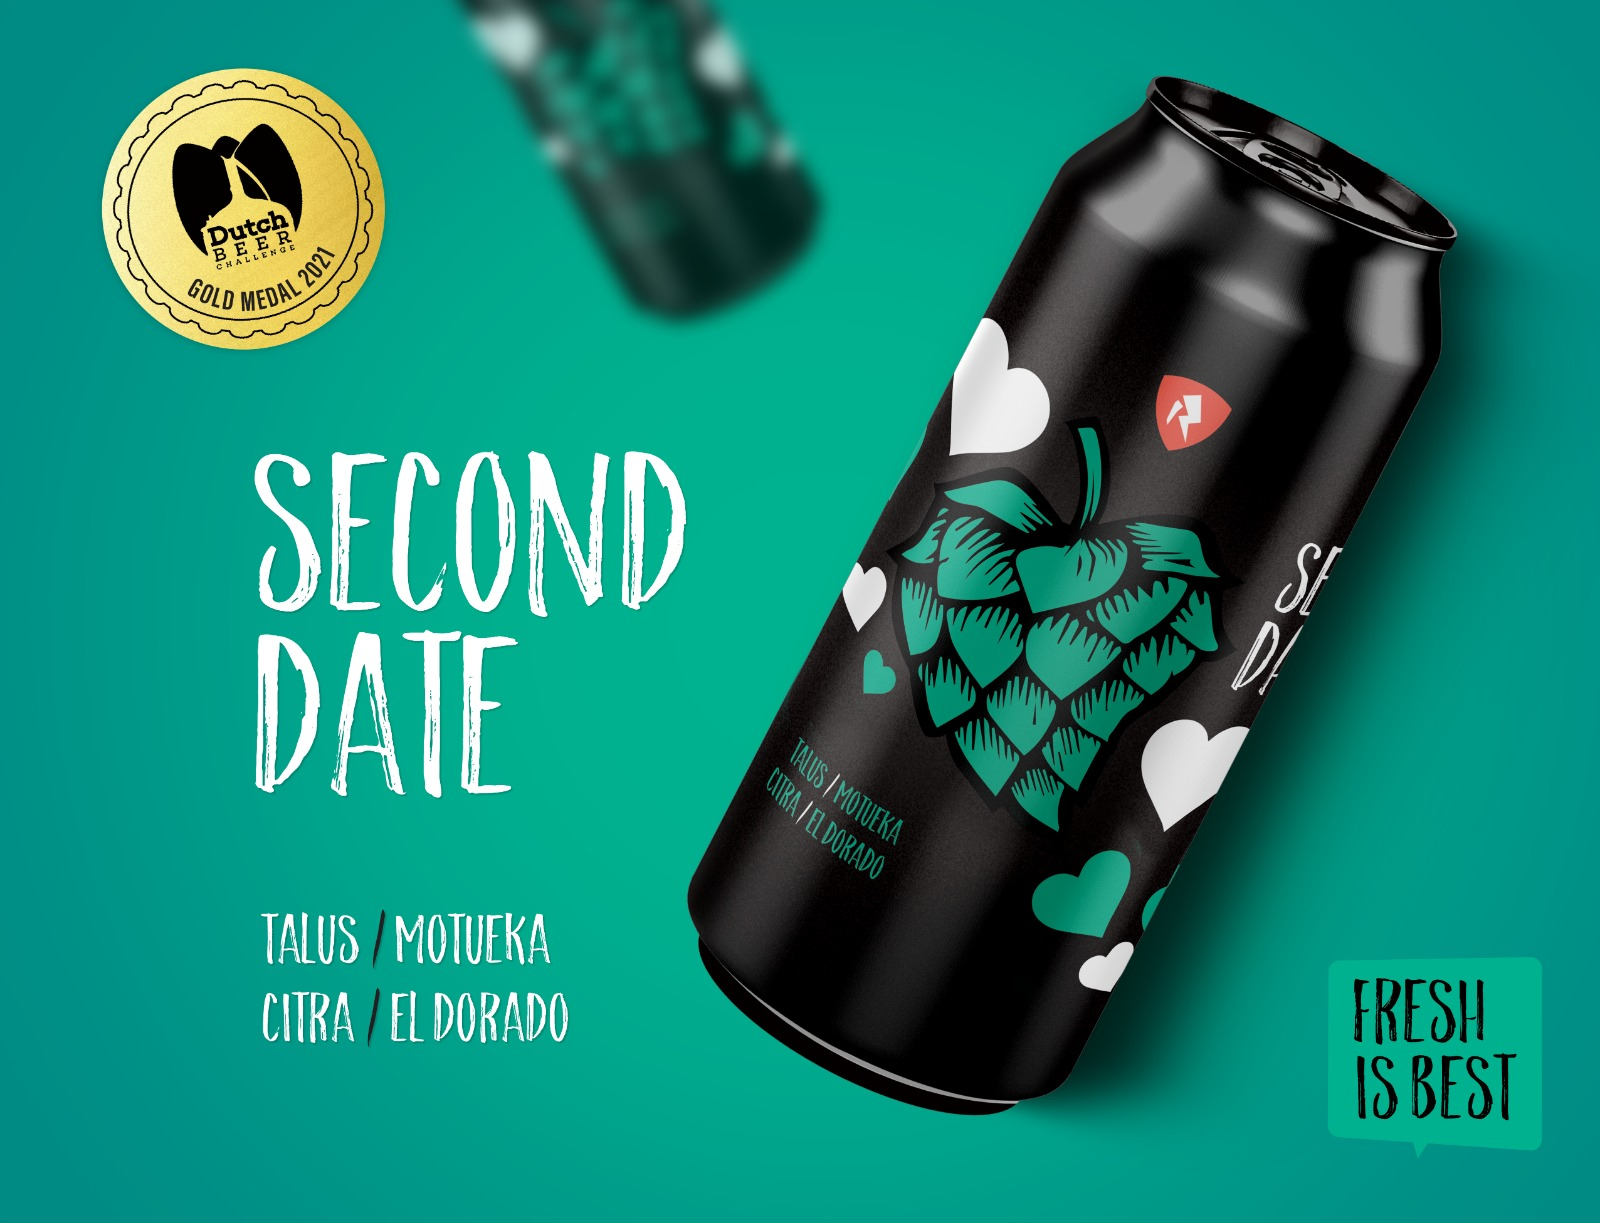 Rock City Brewing Second Date Turquoise